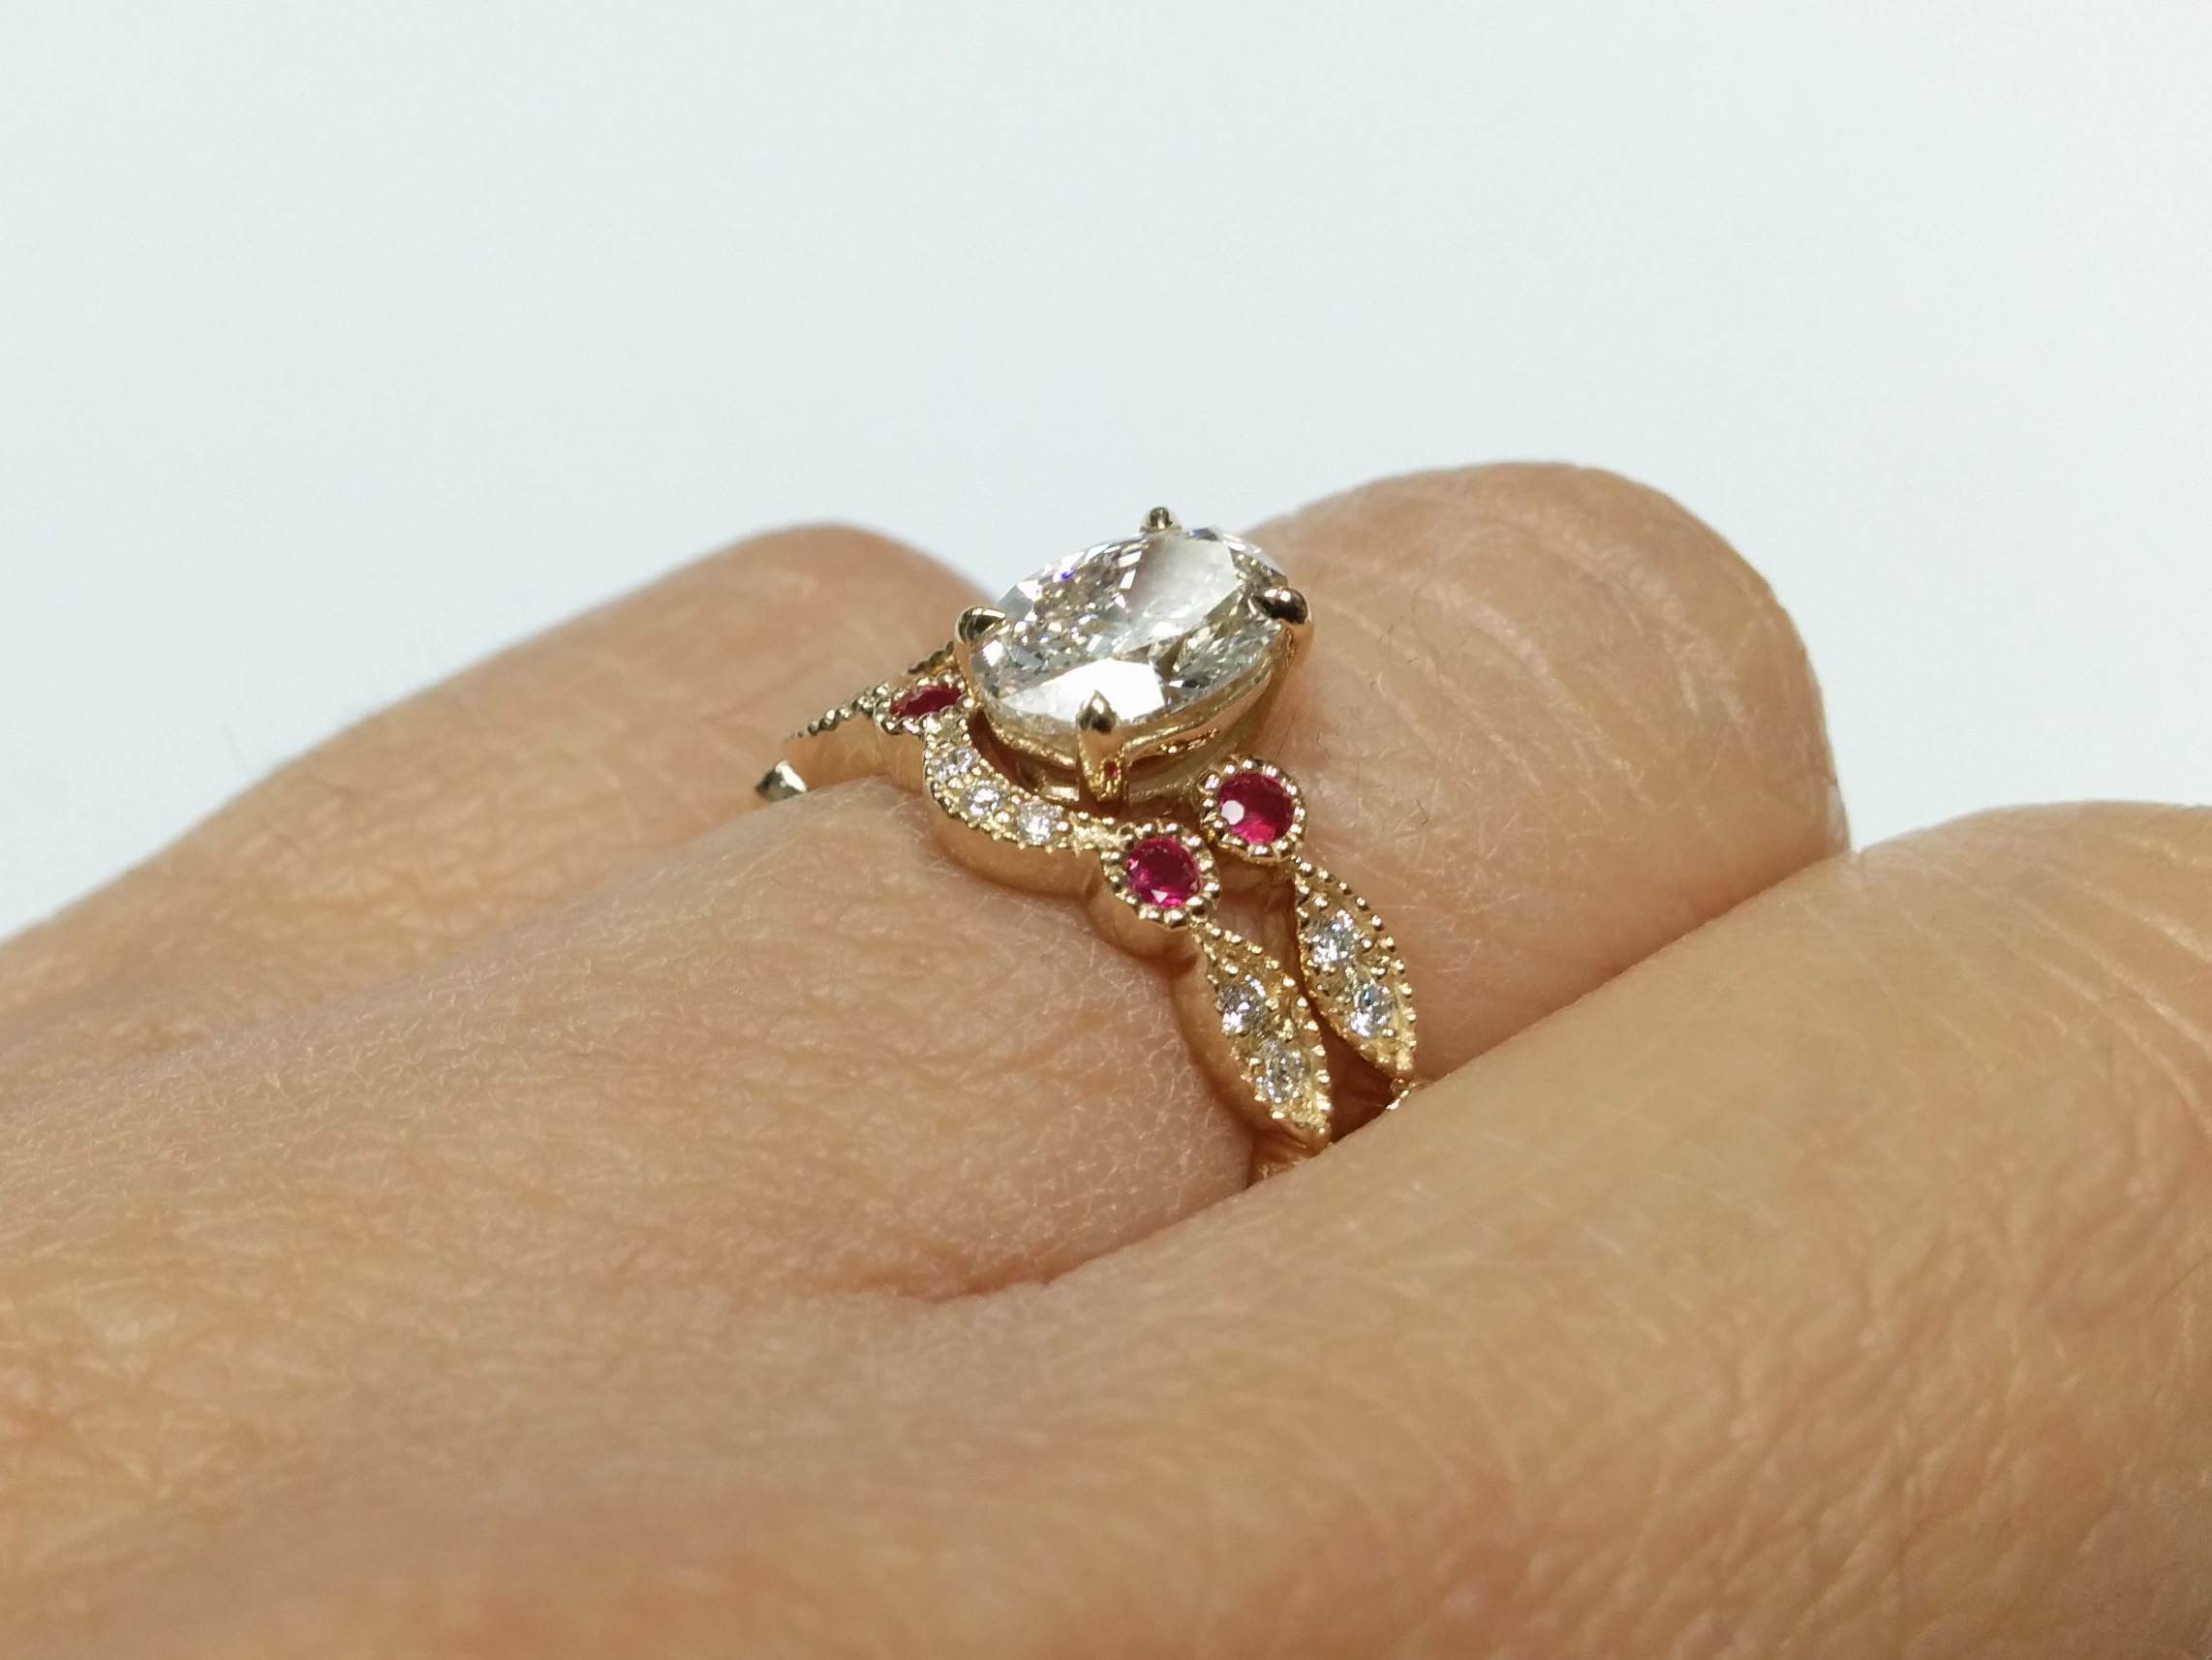 shop johnny yellow rings jrj shaped jewellery engagement diamond gold ring rocket cut oval